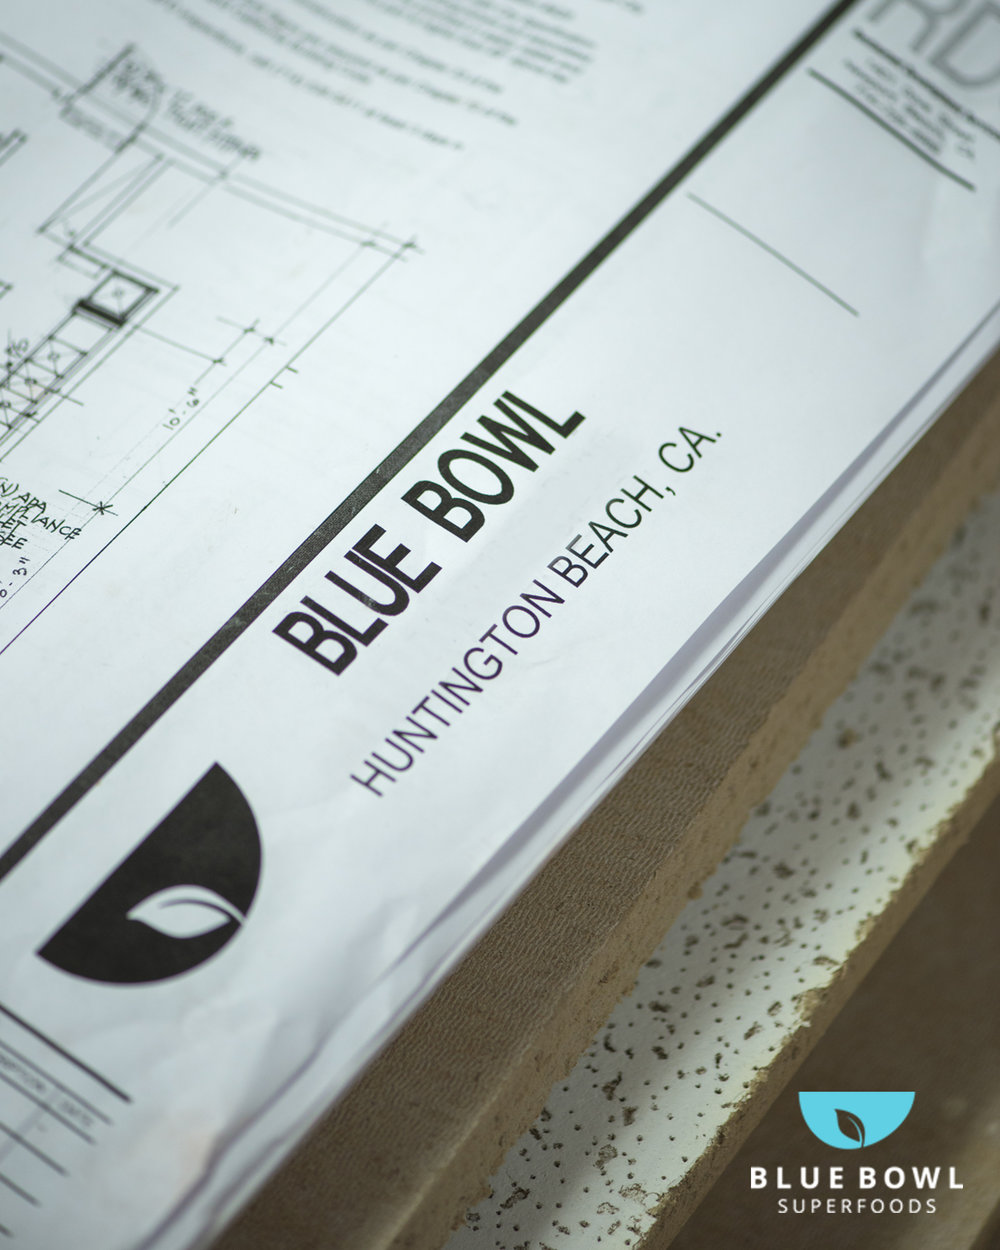 BlueBowl-IG-062718-HBconstruction02.jpg